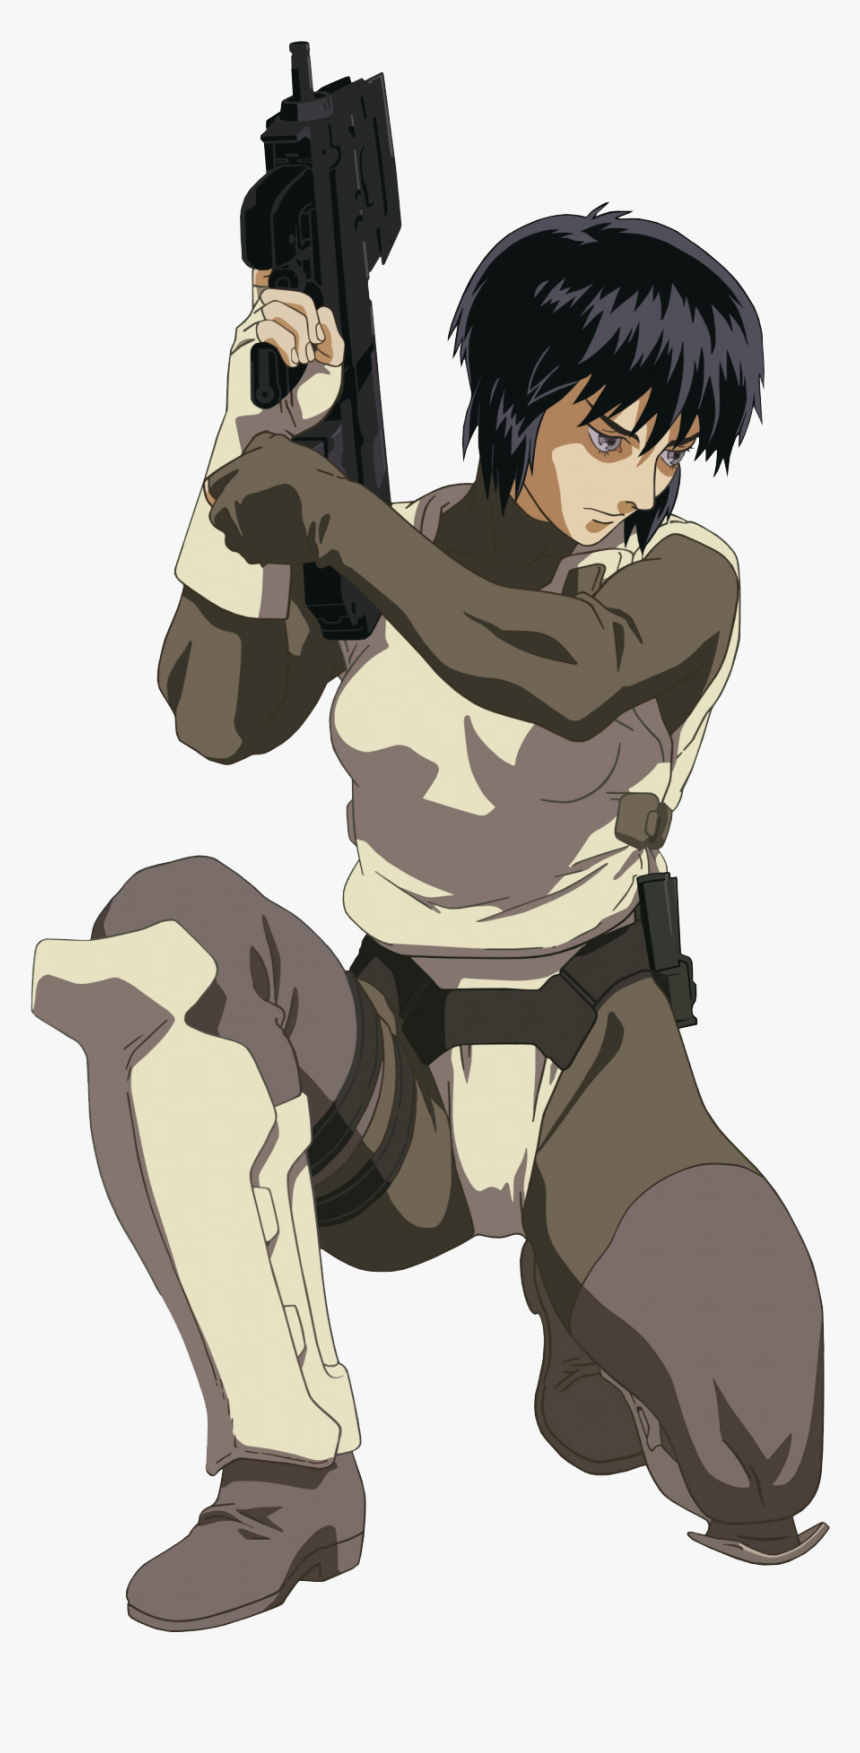 Tumblr N76q1gt2ps1sejglzo1 Ghost In The Shell Hd Png Download Transparent Png Image Pngitem